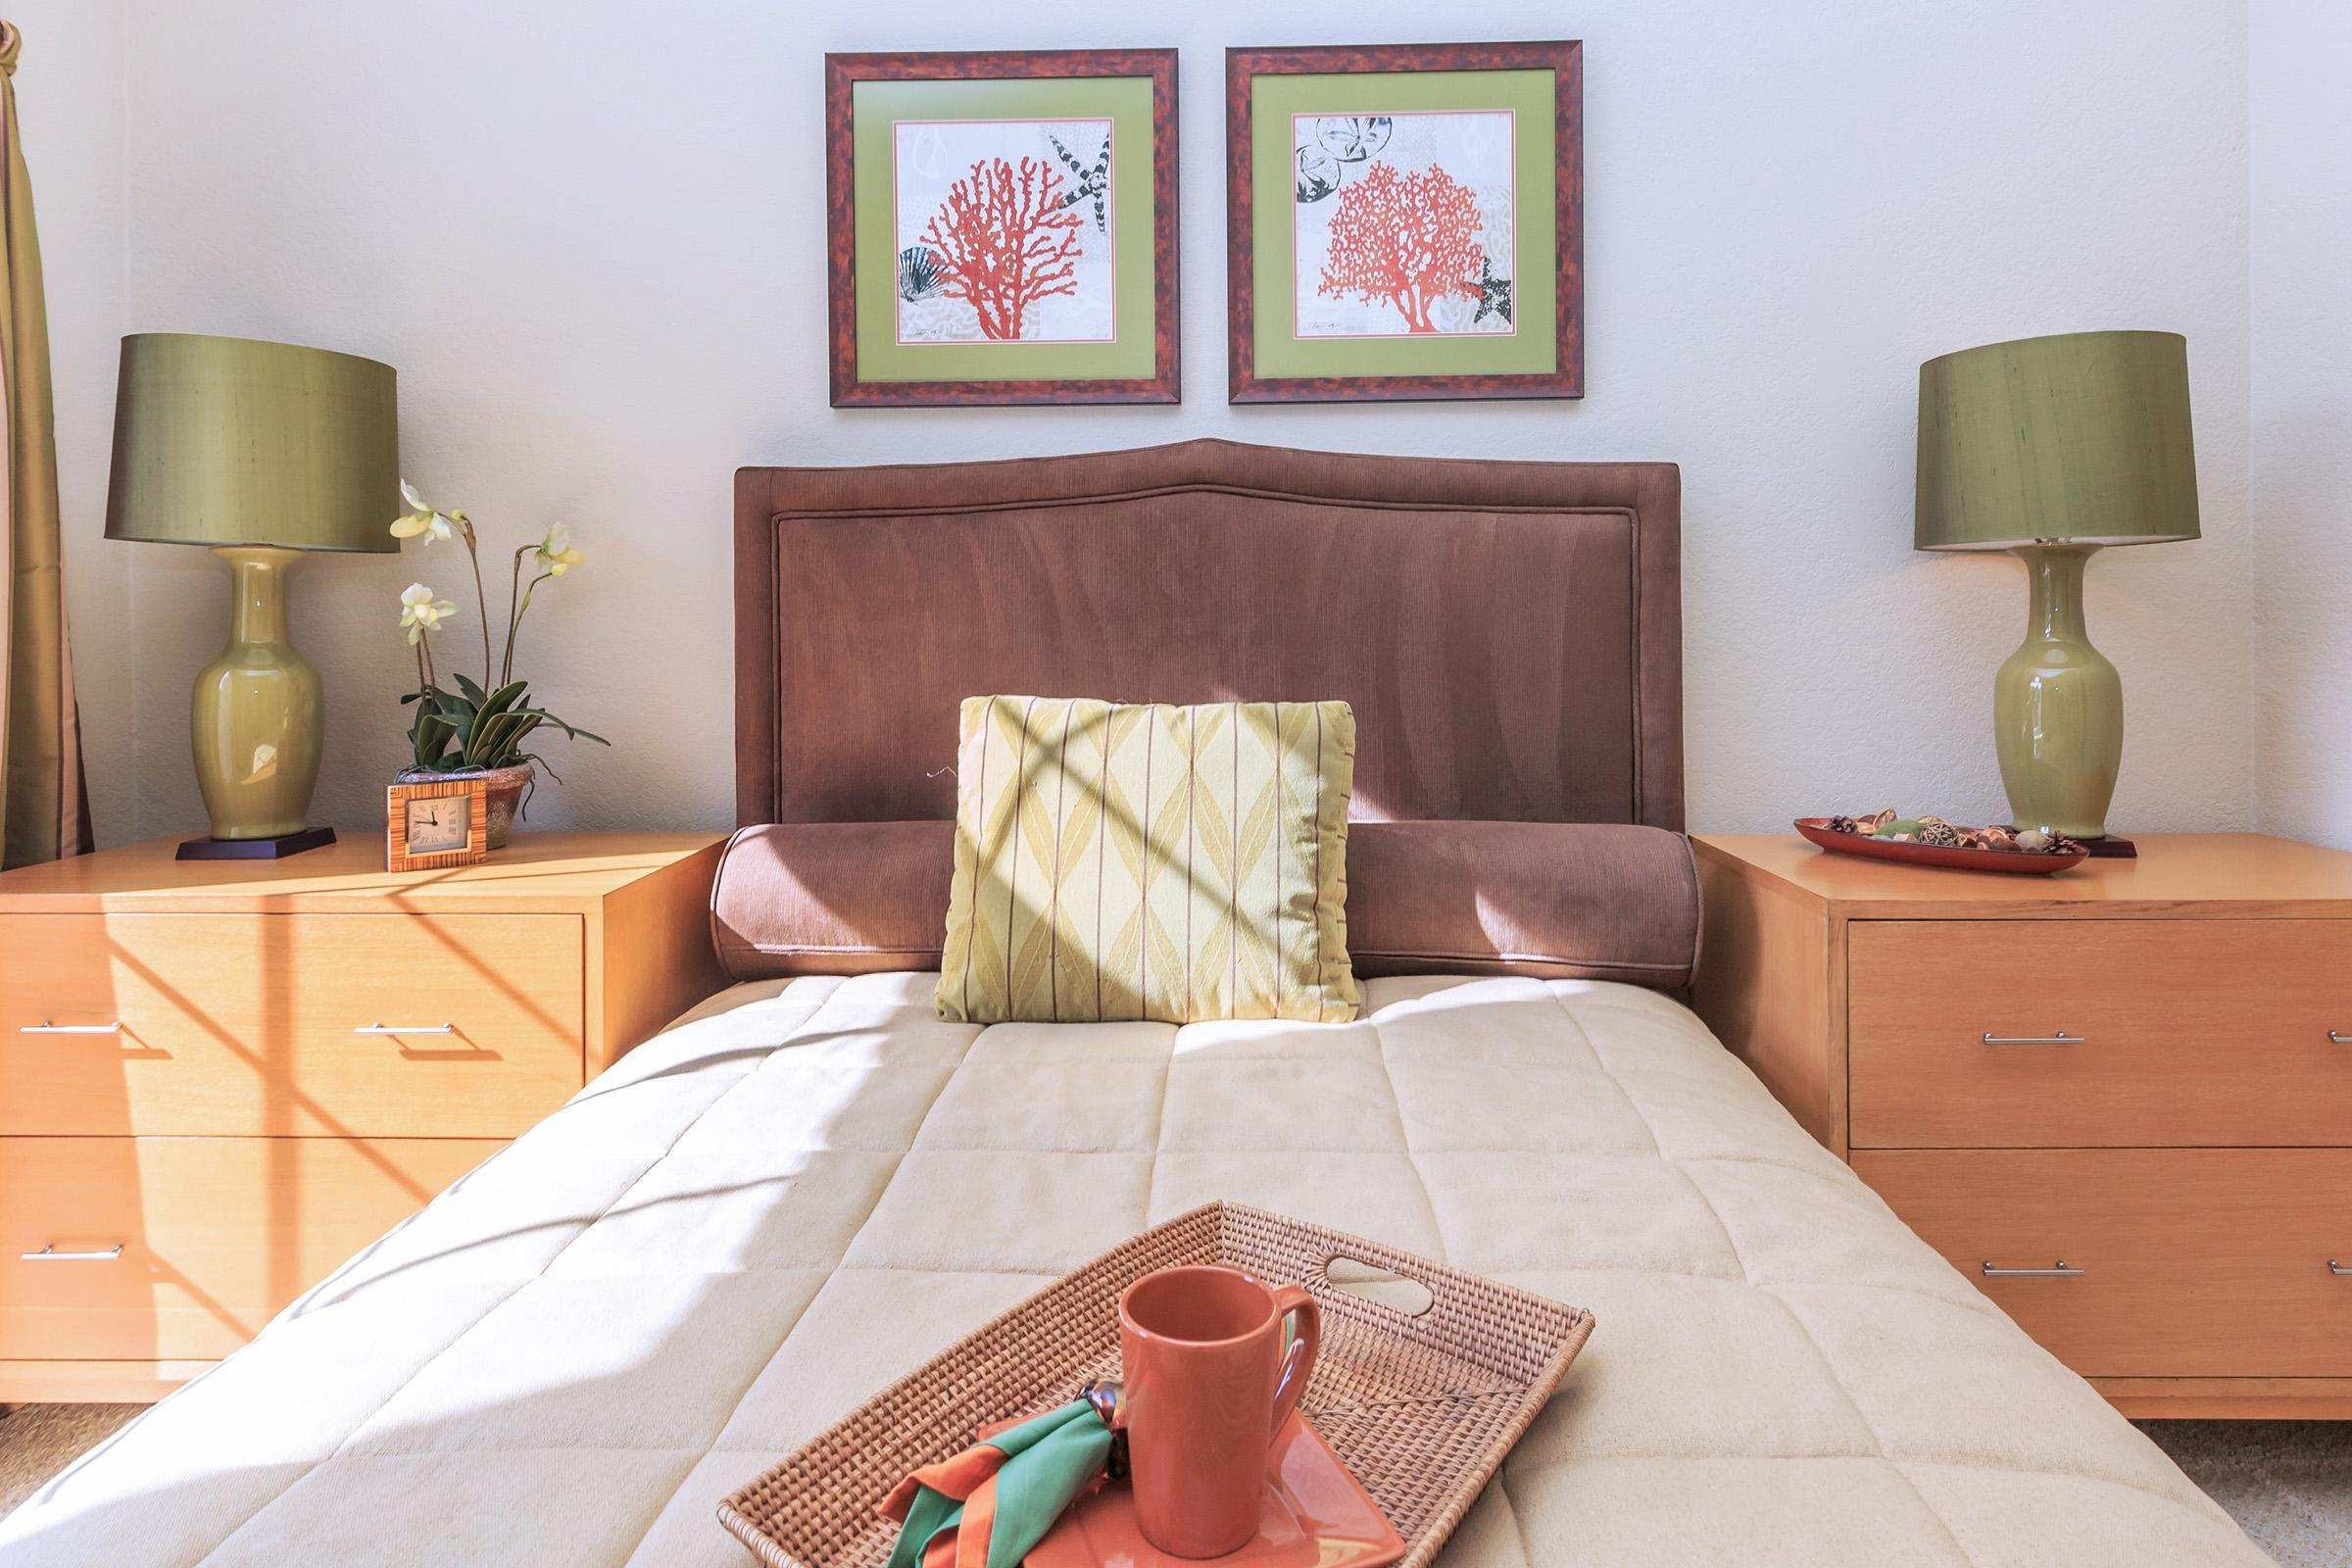 a bedroom with a bed and a table